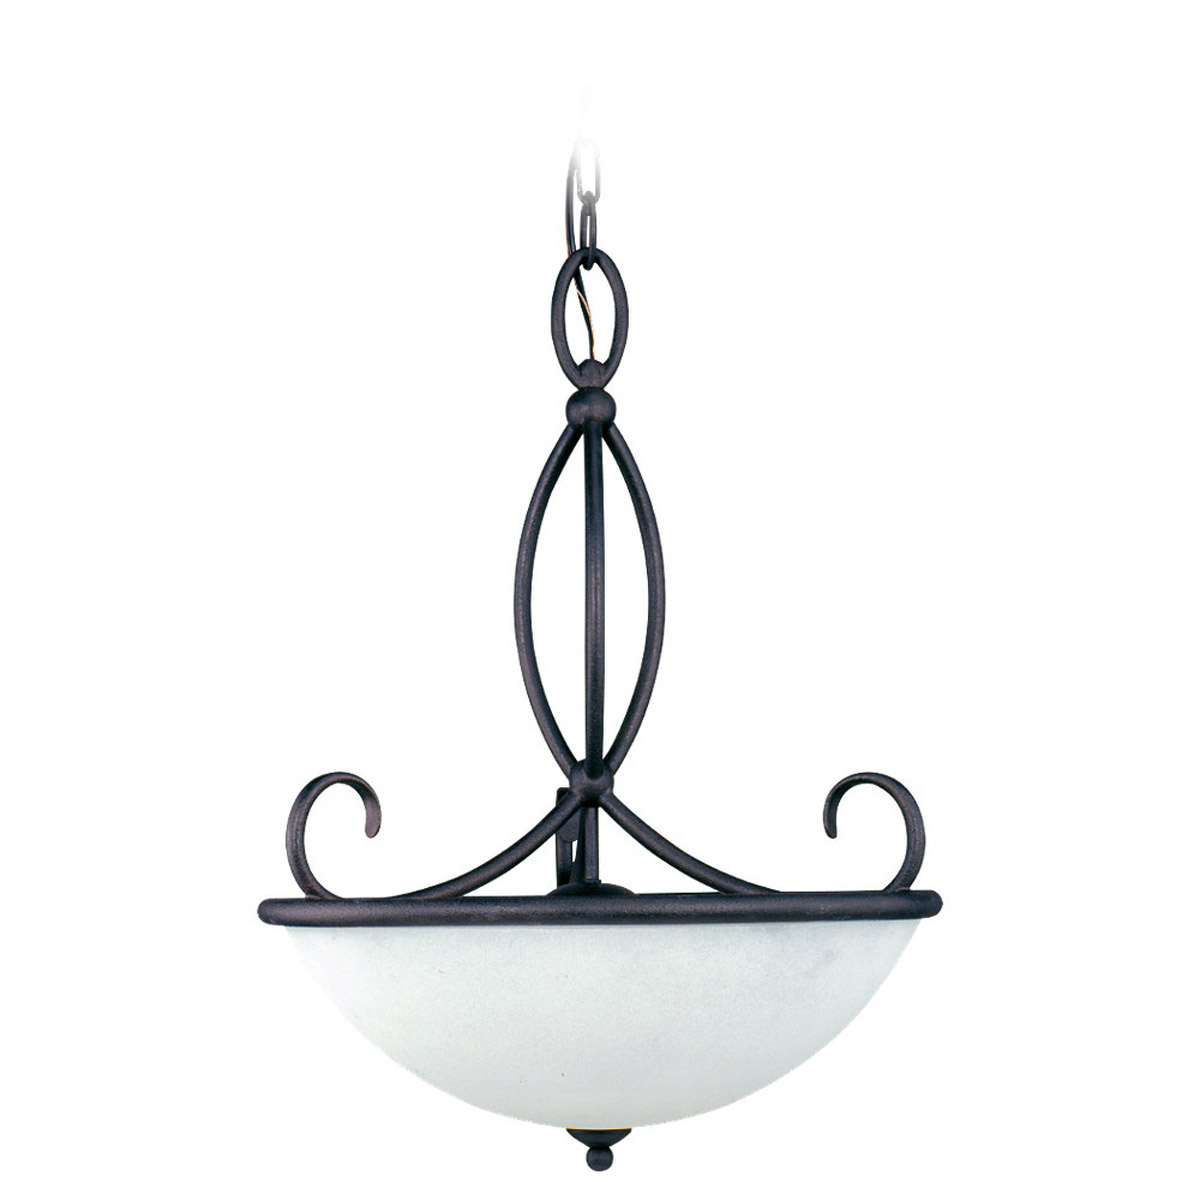 Sea Gull Lighting Pemberton 3 Light Pendant in Peppercorn 65075-799